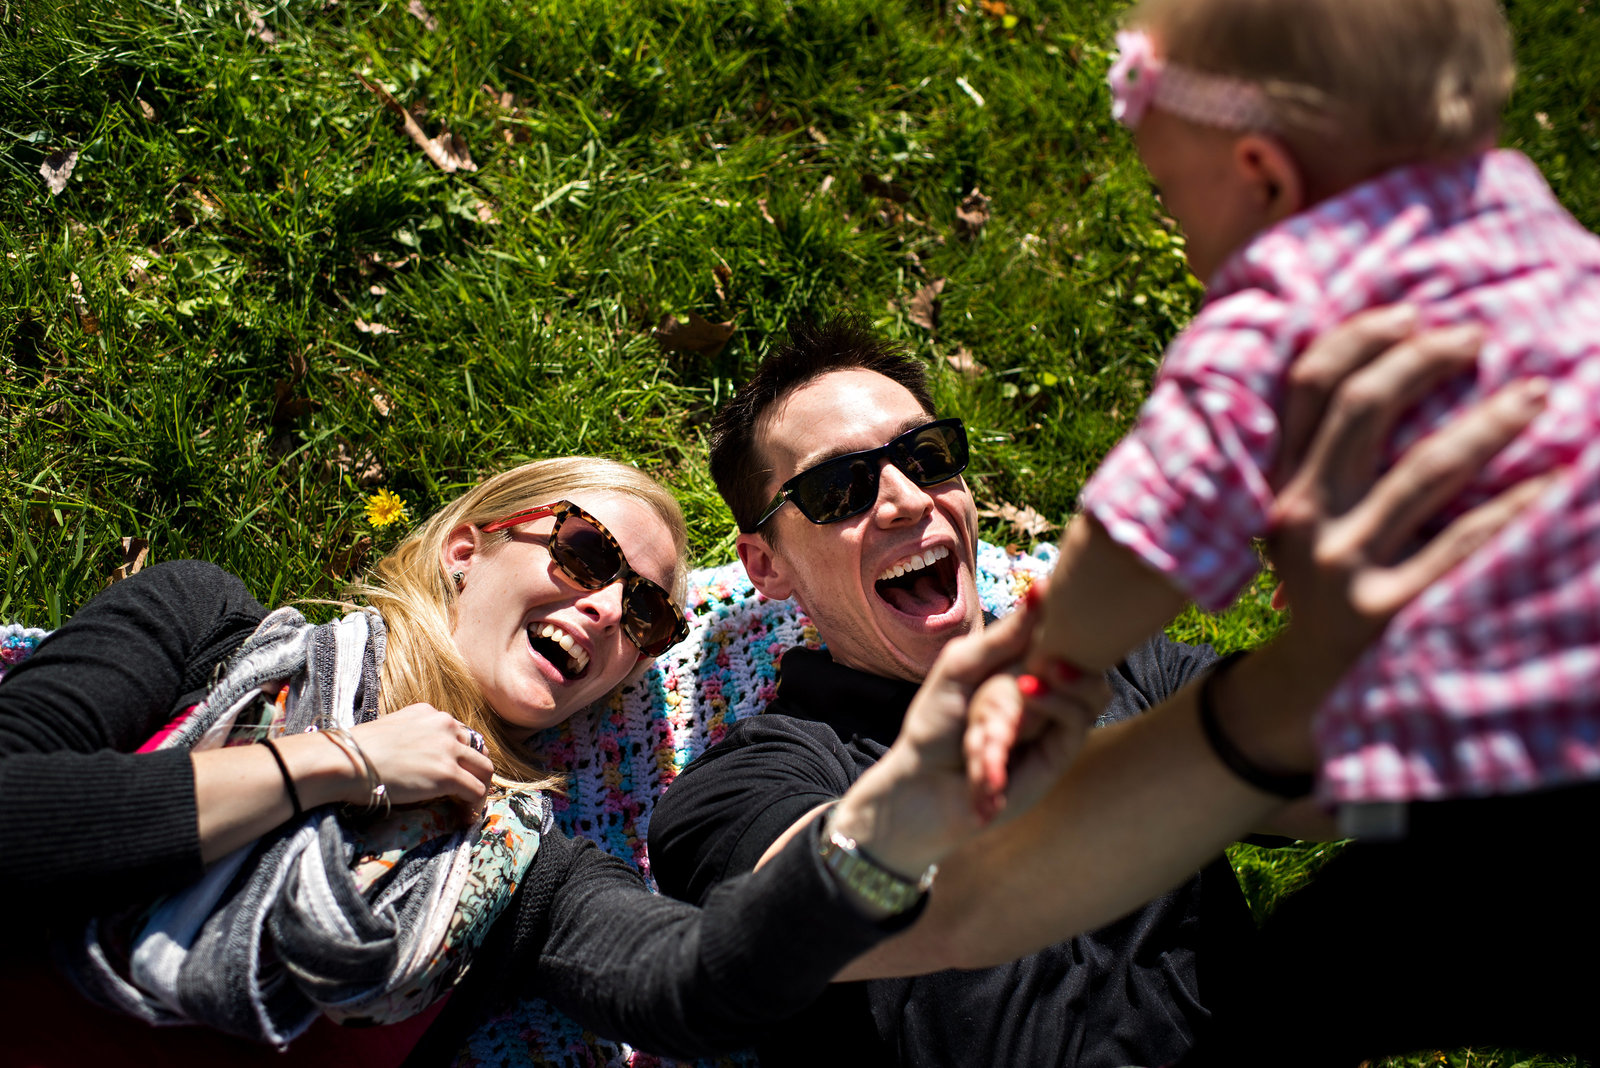 New parents lay on the grass in the park and lift their baby over their heads.